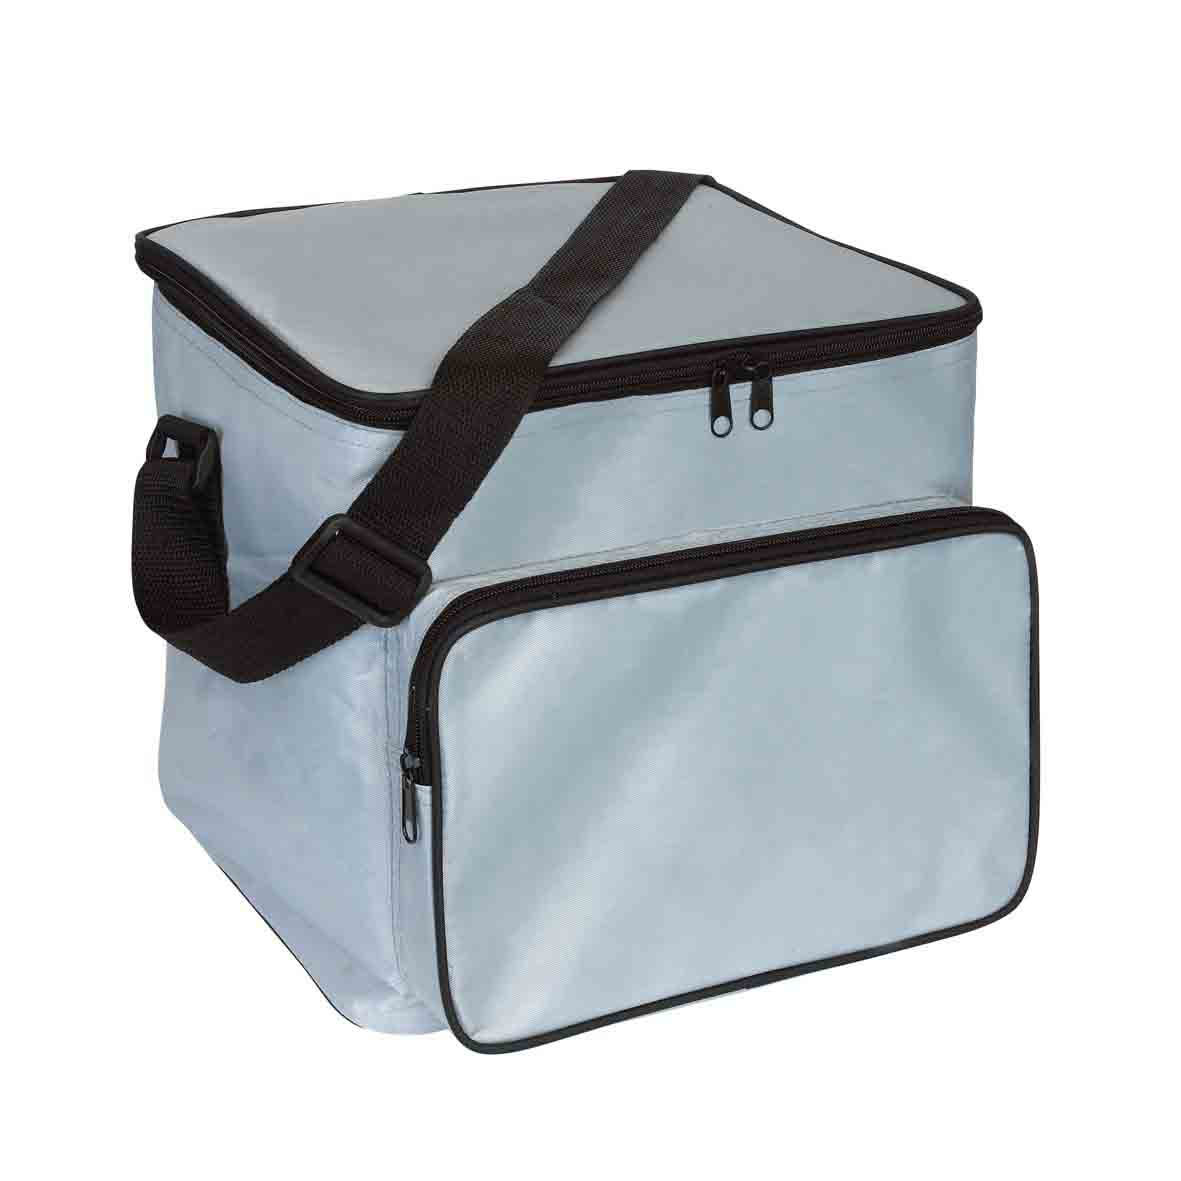 Cooler bag 'Ice' - Silver Grey ins-0801124